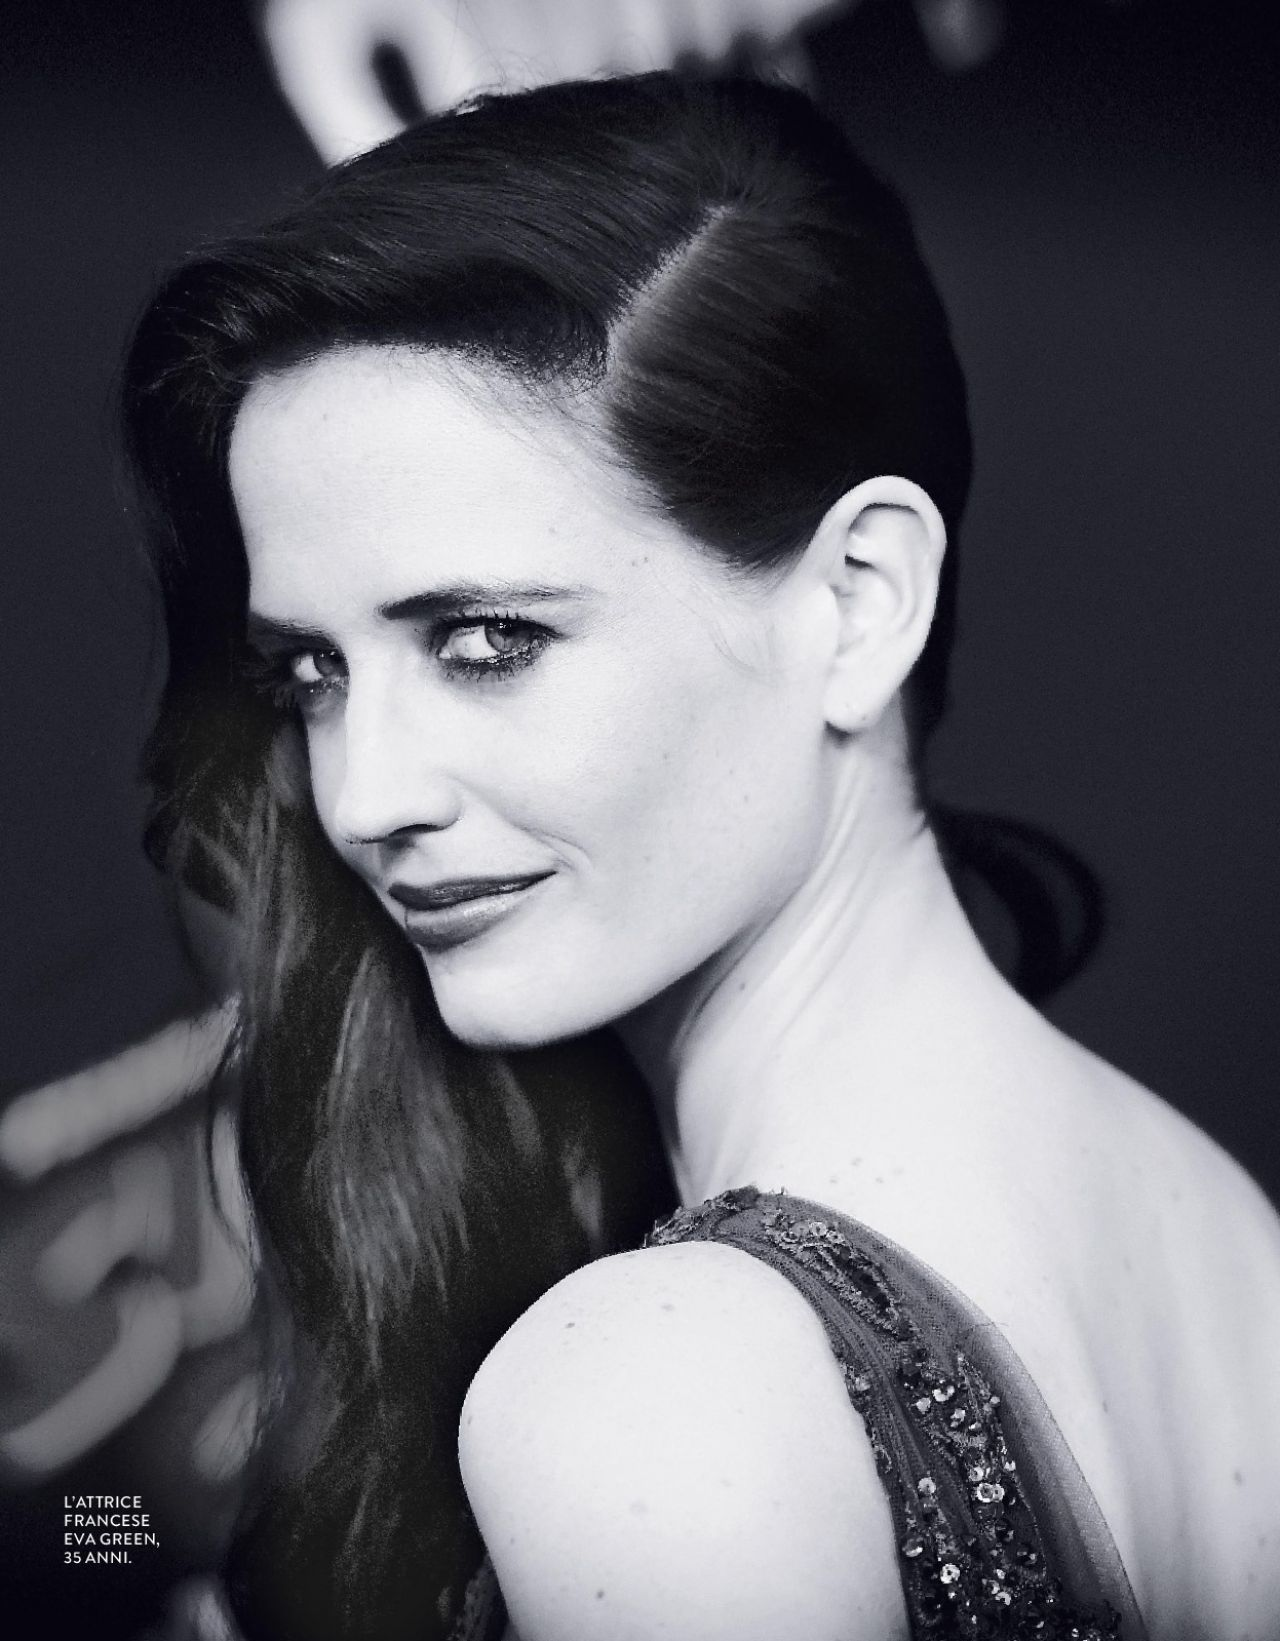 Eva Green Latest Photos - CelebMafia Eva Green